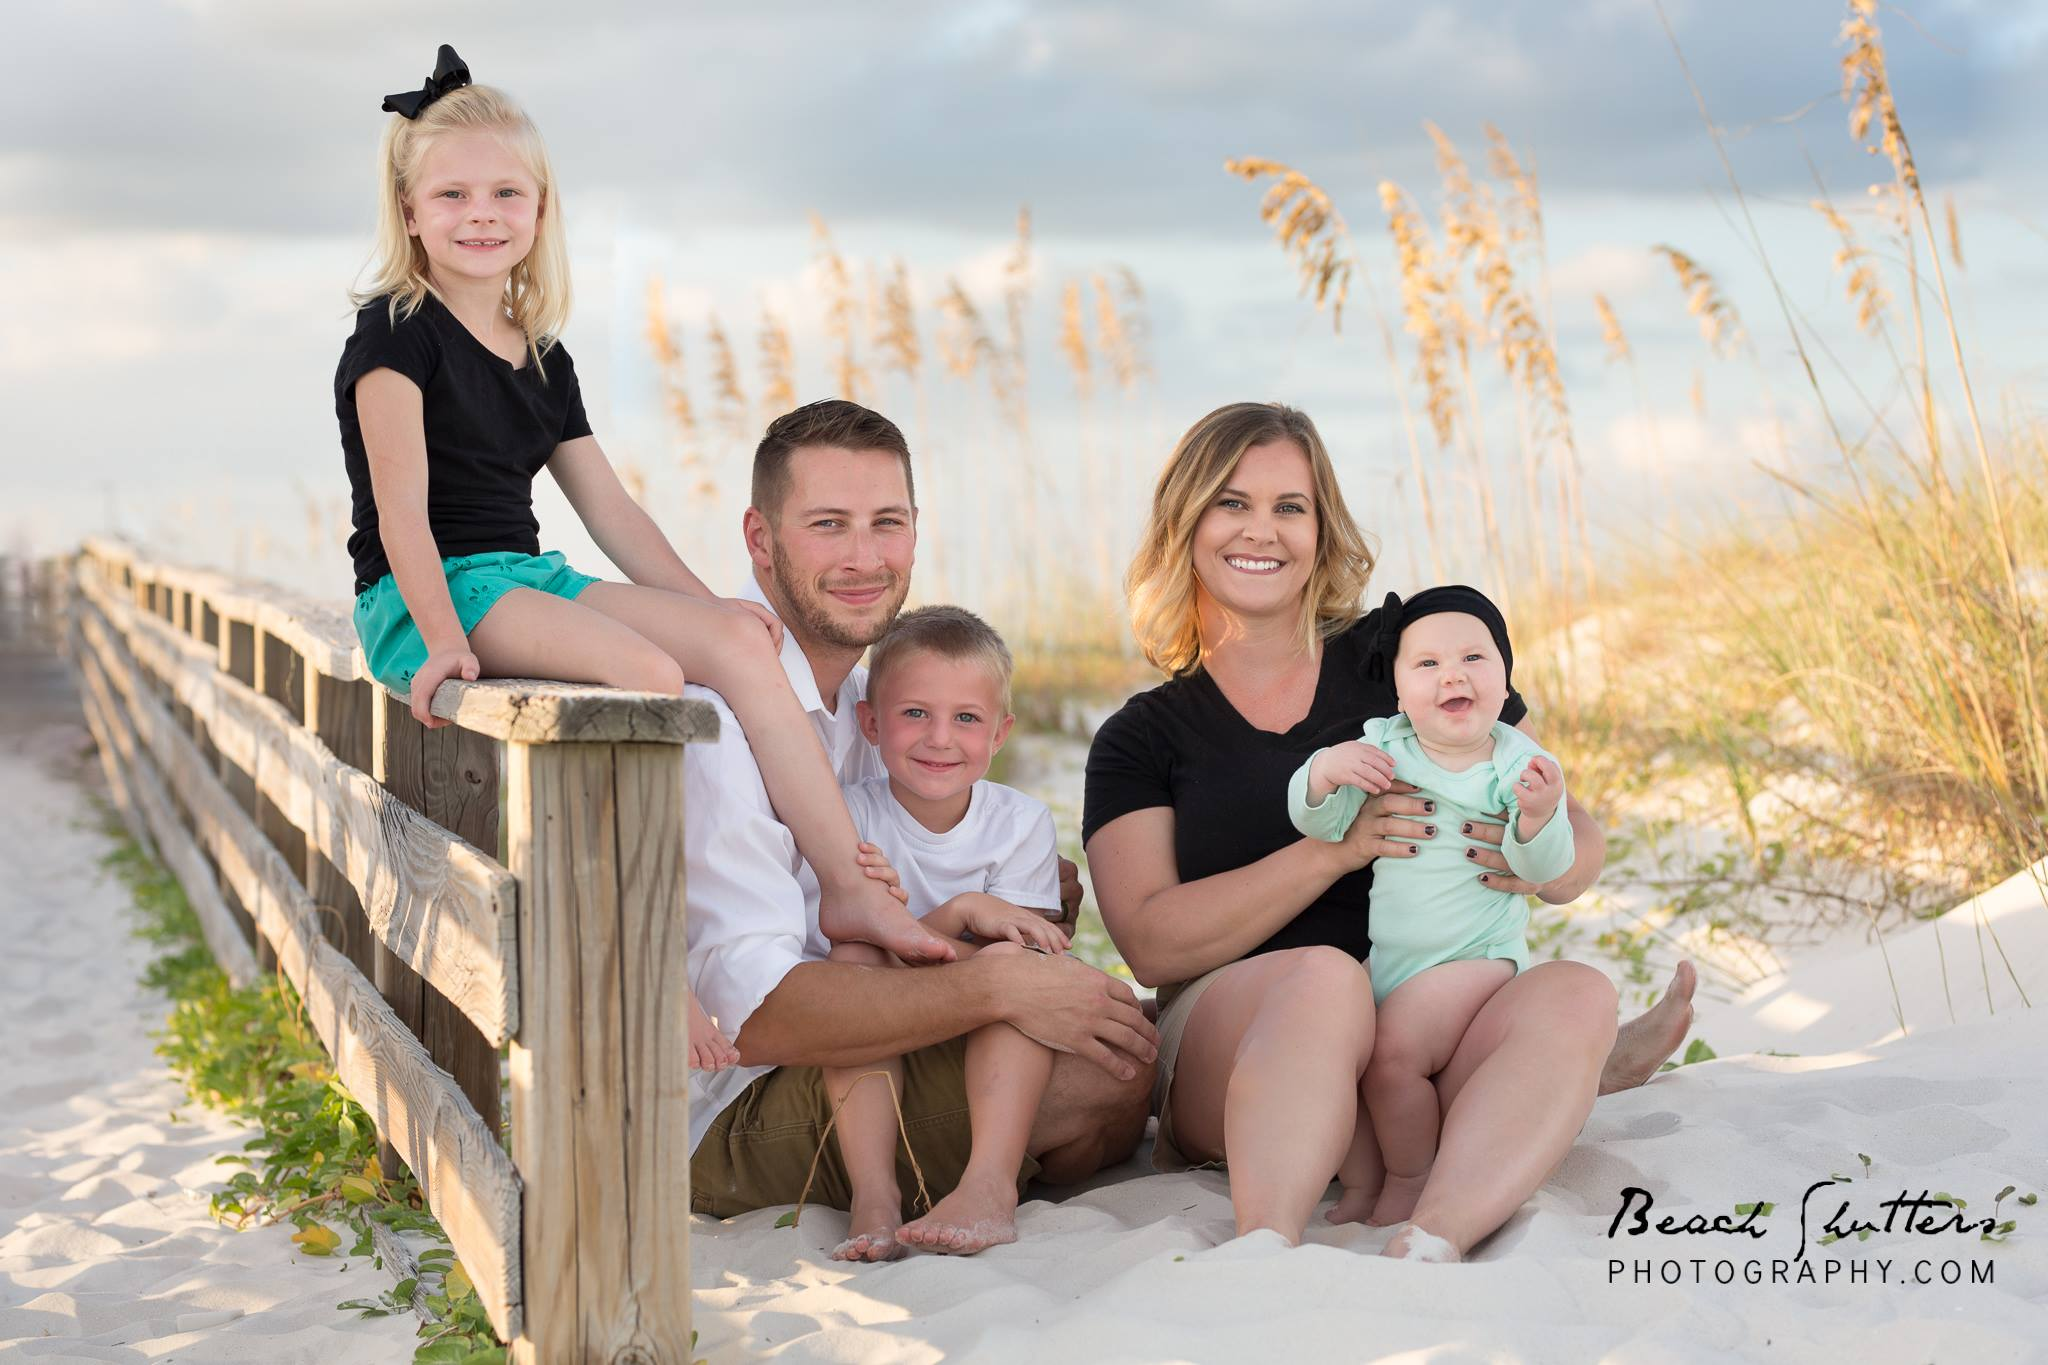 photographer Orange Beach takes sunset photos of family